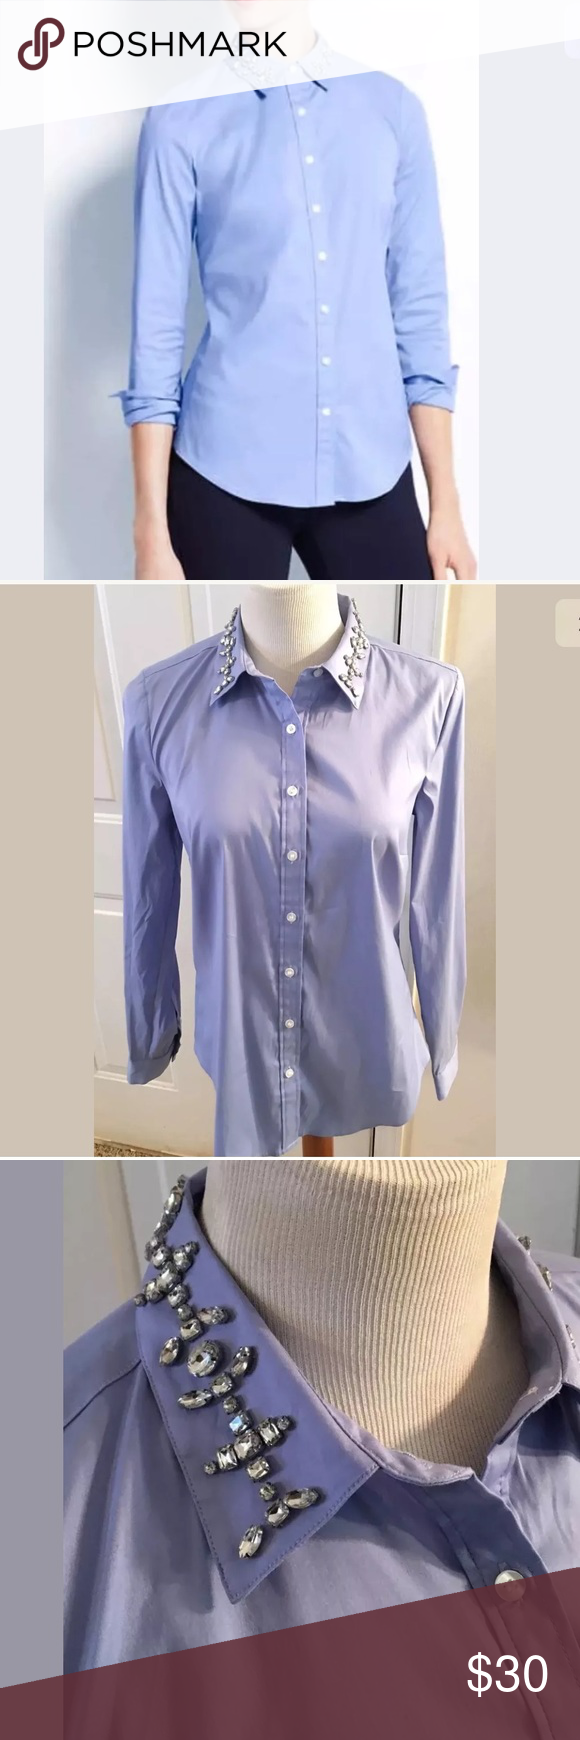 87f6ac22 Ann Taylor jeweled collar blue dress shirt size 8 New with tags, perfect  for the office or anywhere you want to add a bit of personality. Great shirt .